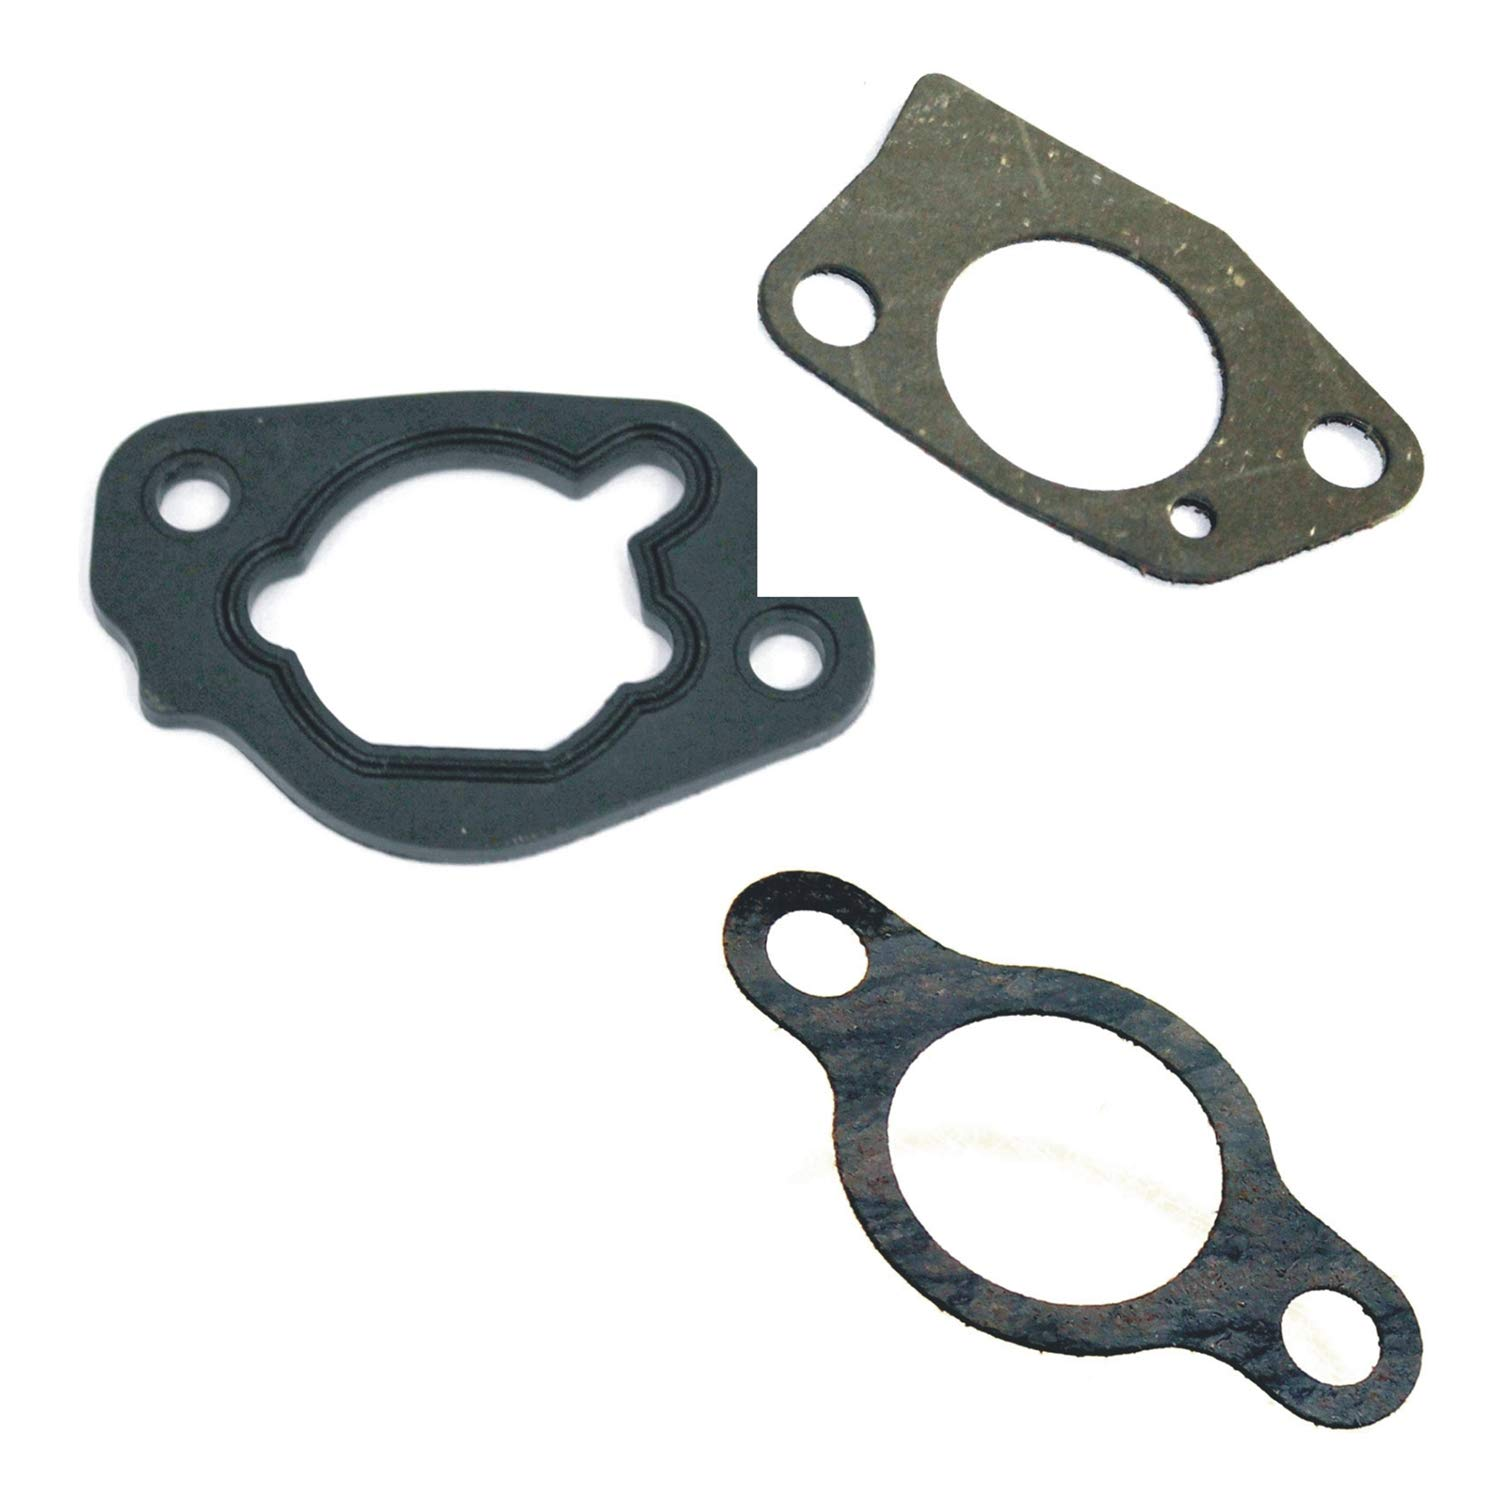 GX390 Carburettor Carb Gasket Kit ProductPro Honda GX340